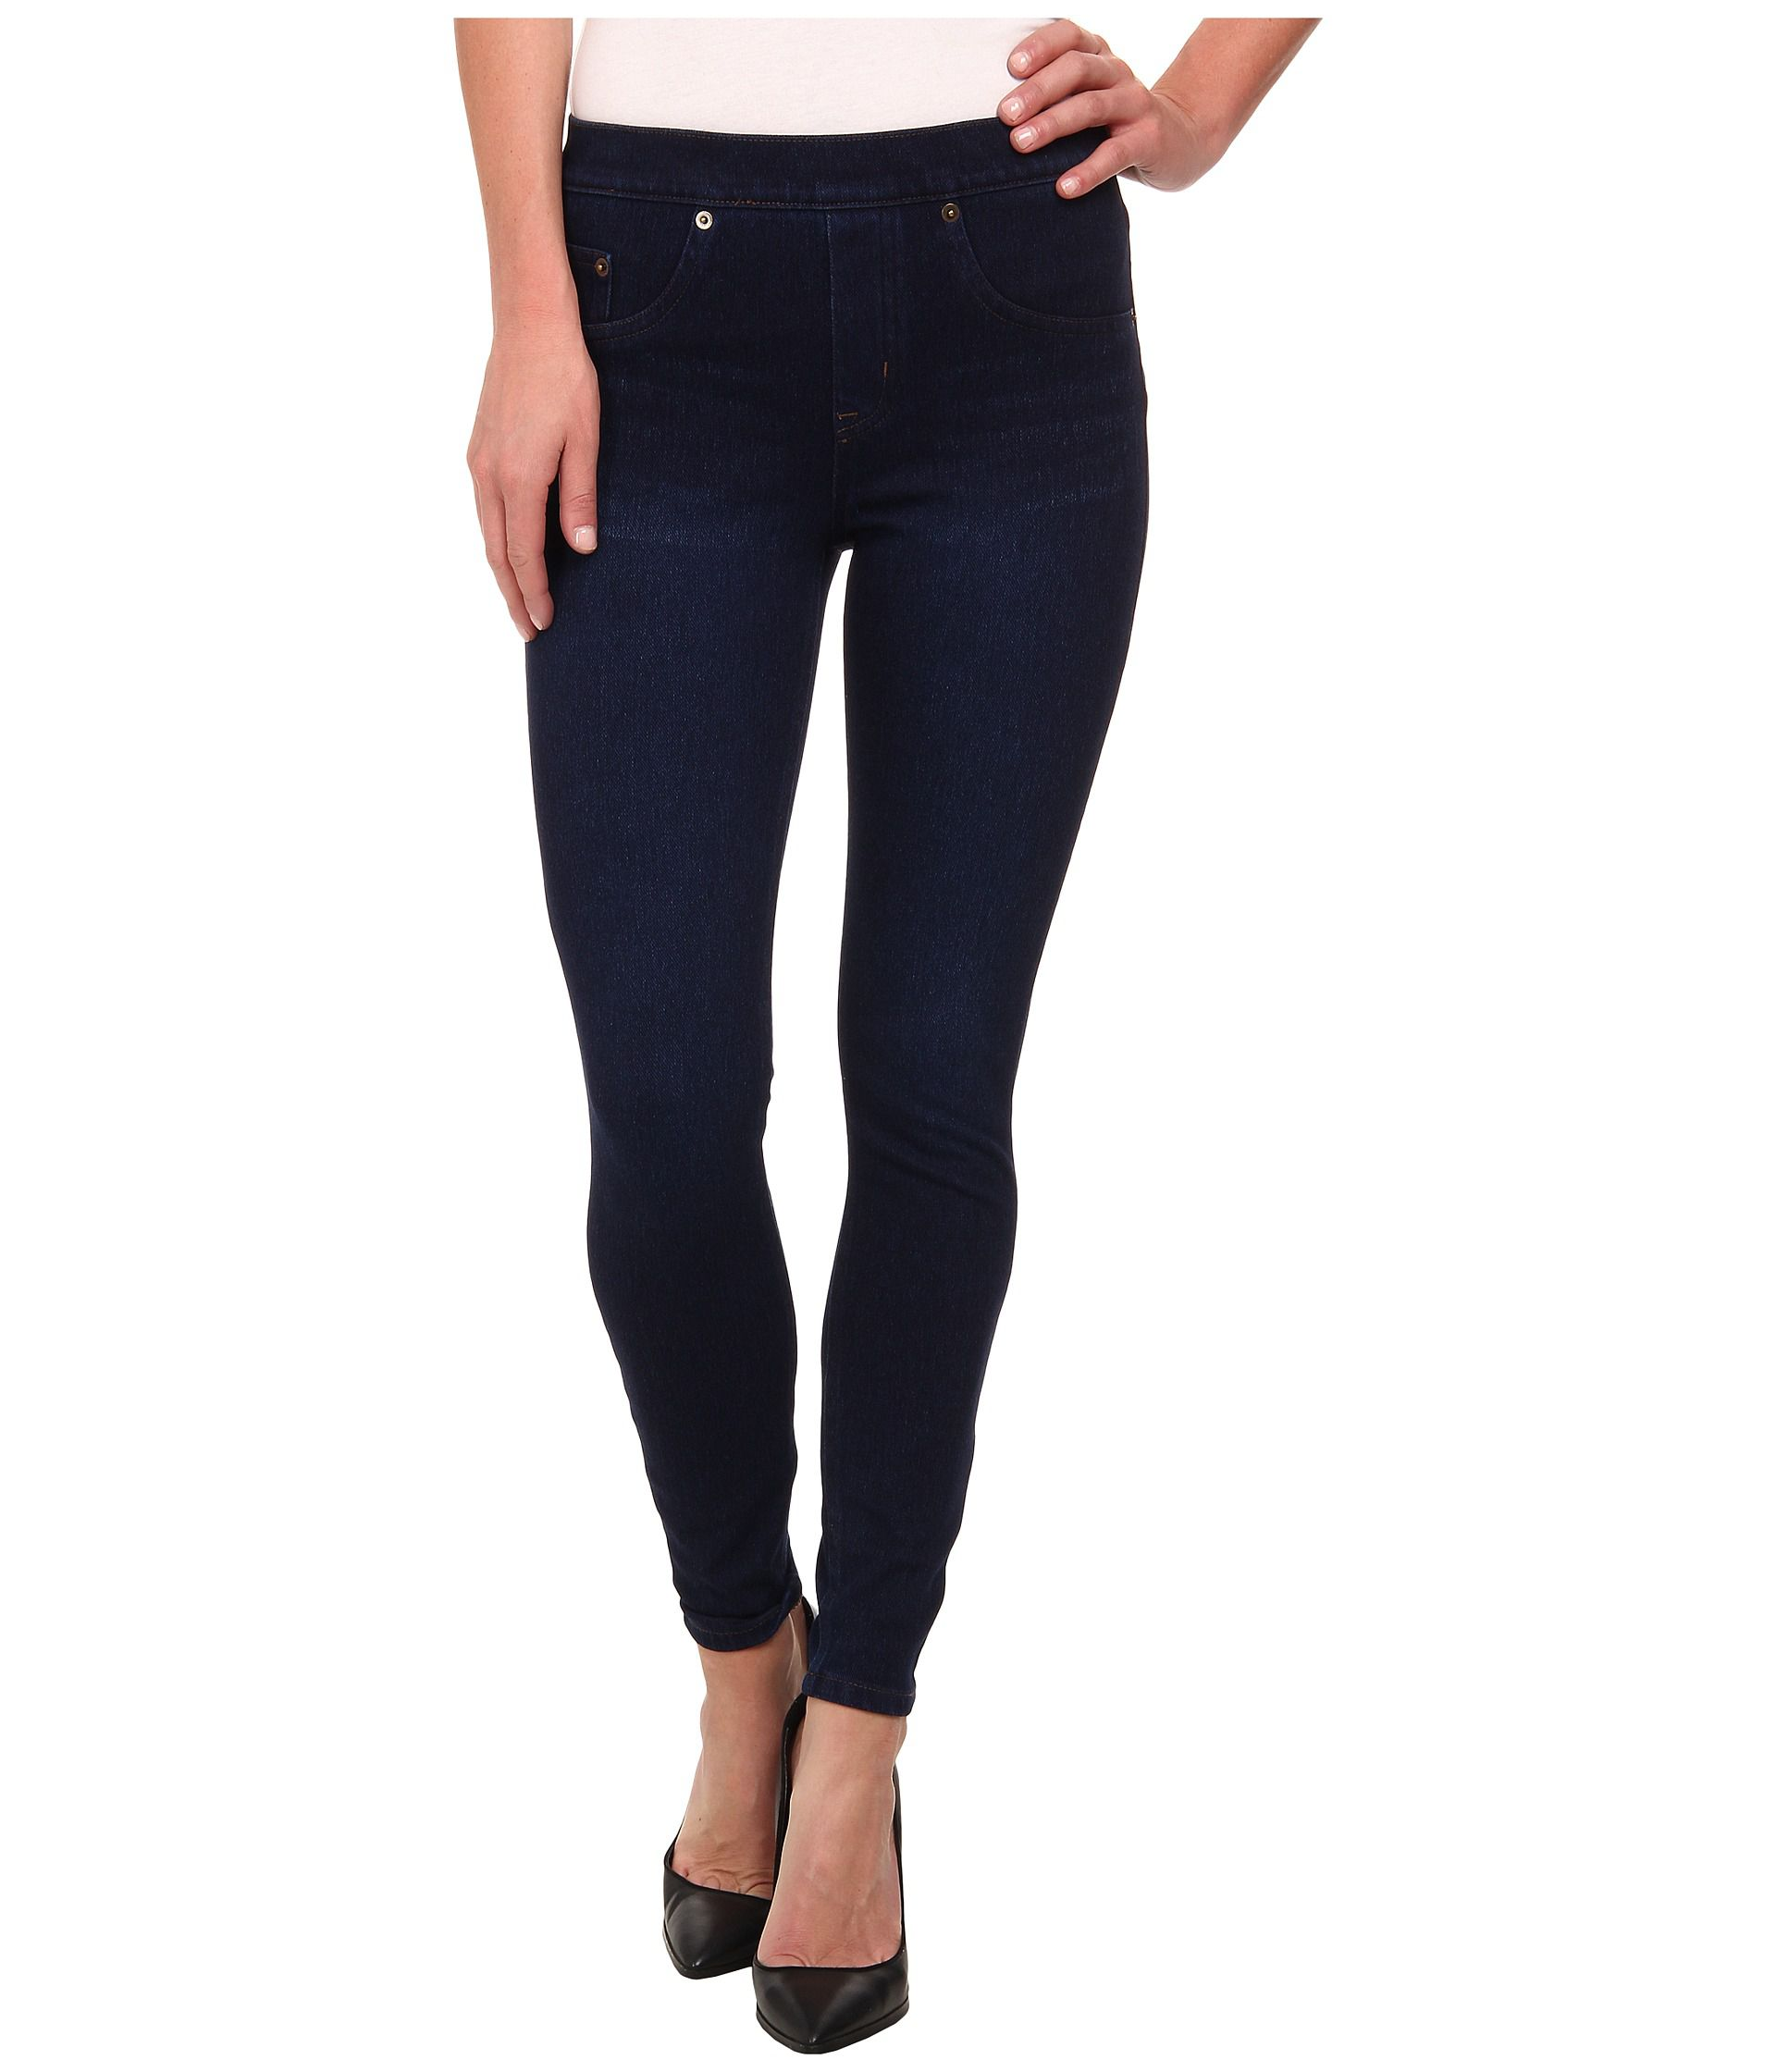 f84c943ea7f 5 Body Shaping Jeans that Act Like Shapewear